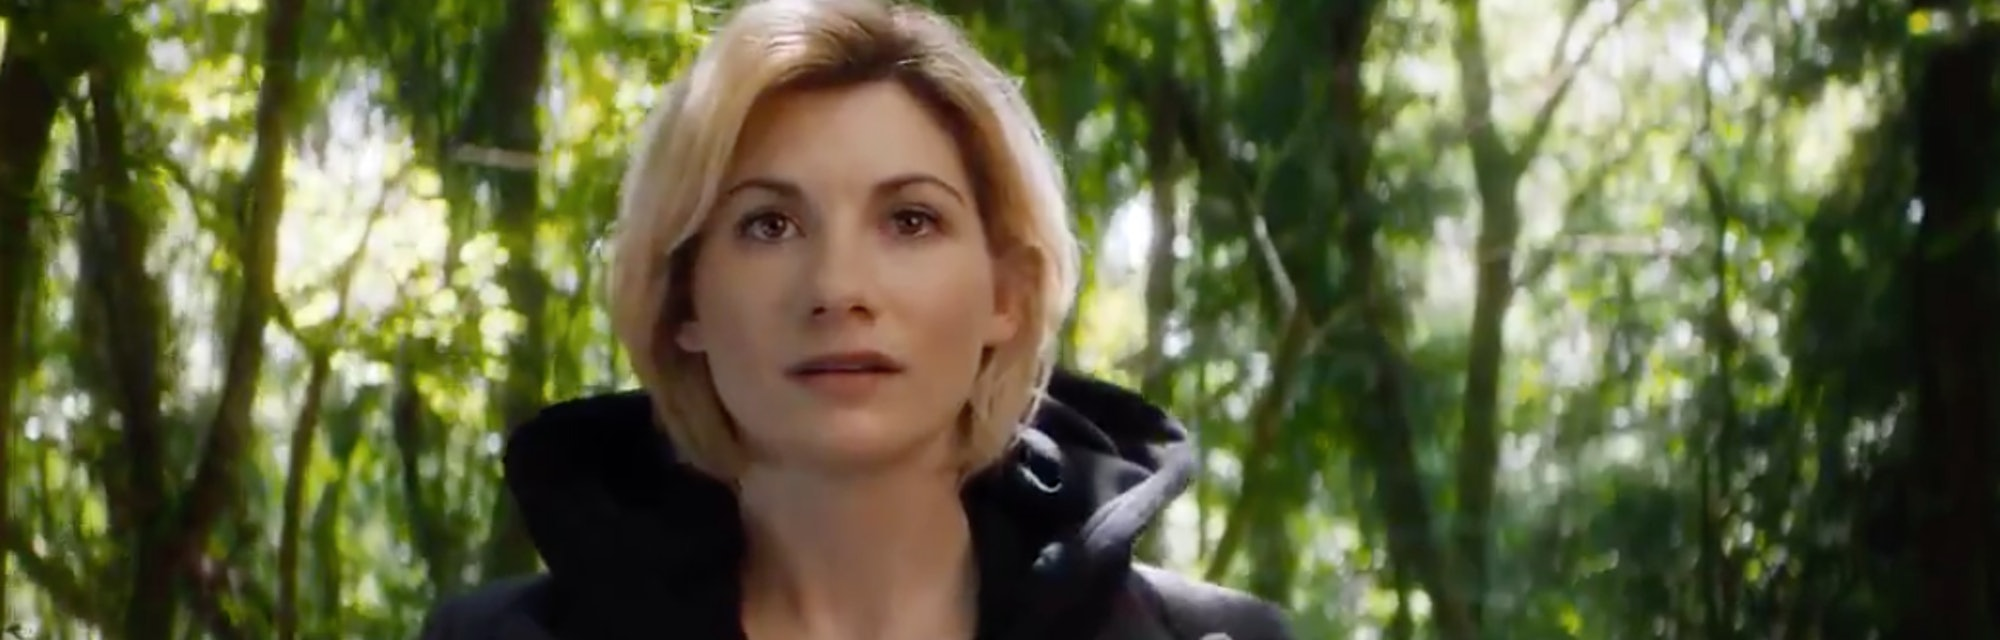 Broadchurch Star Jodie Whittaker Is Named Doctor Whos 13th and First Female Doctor | E! News